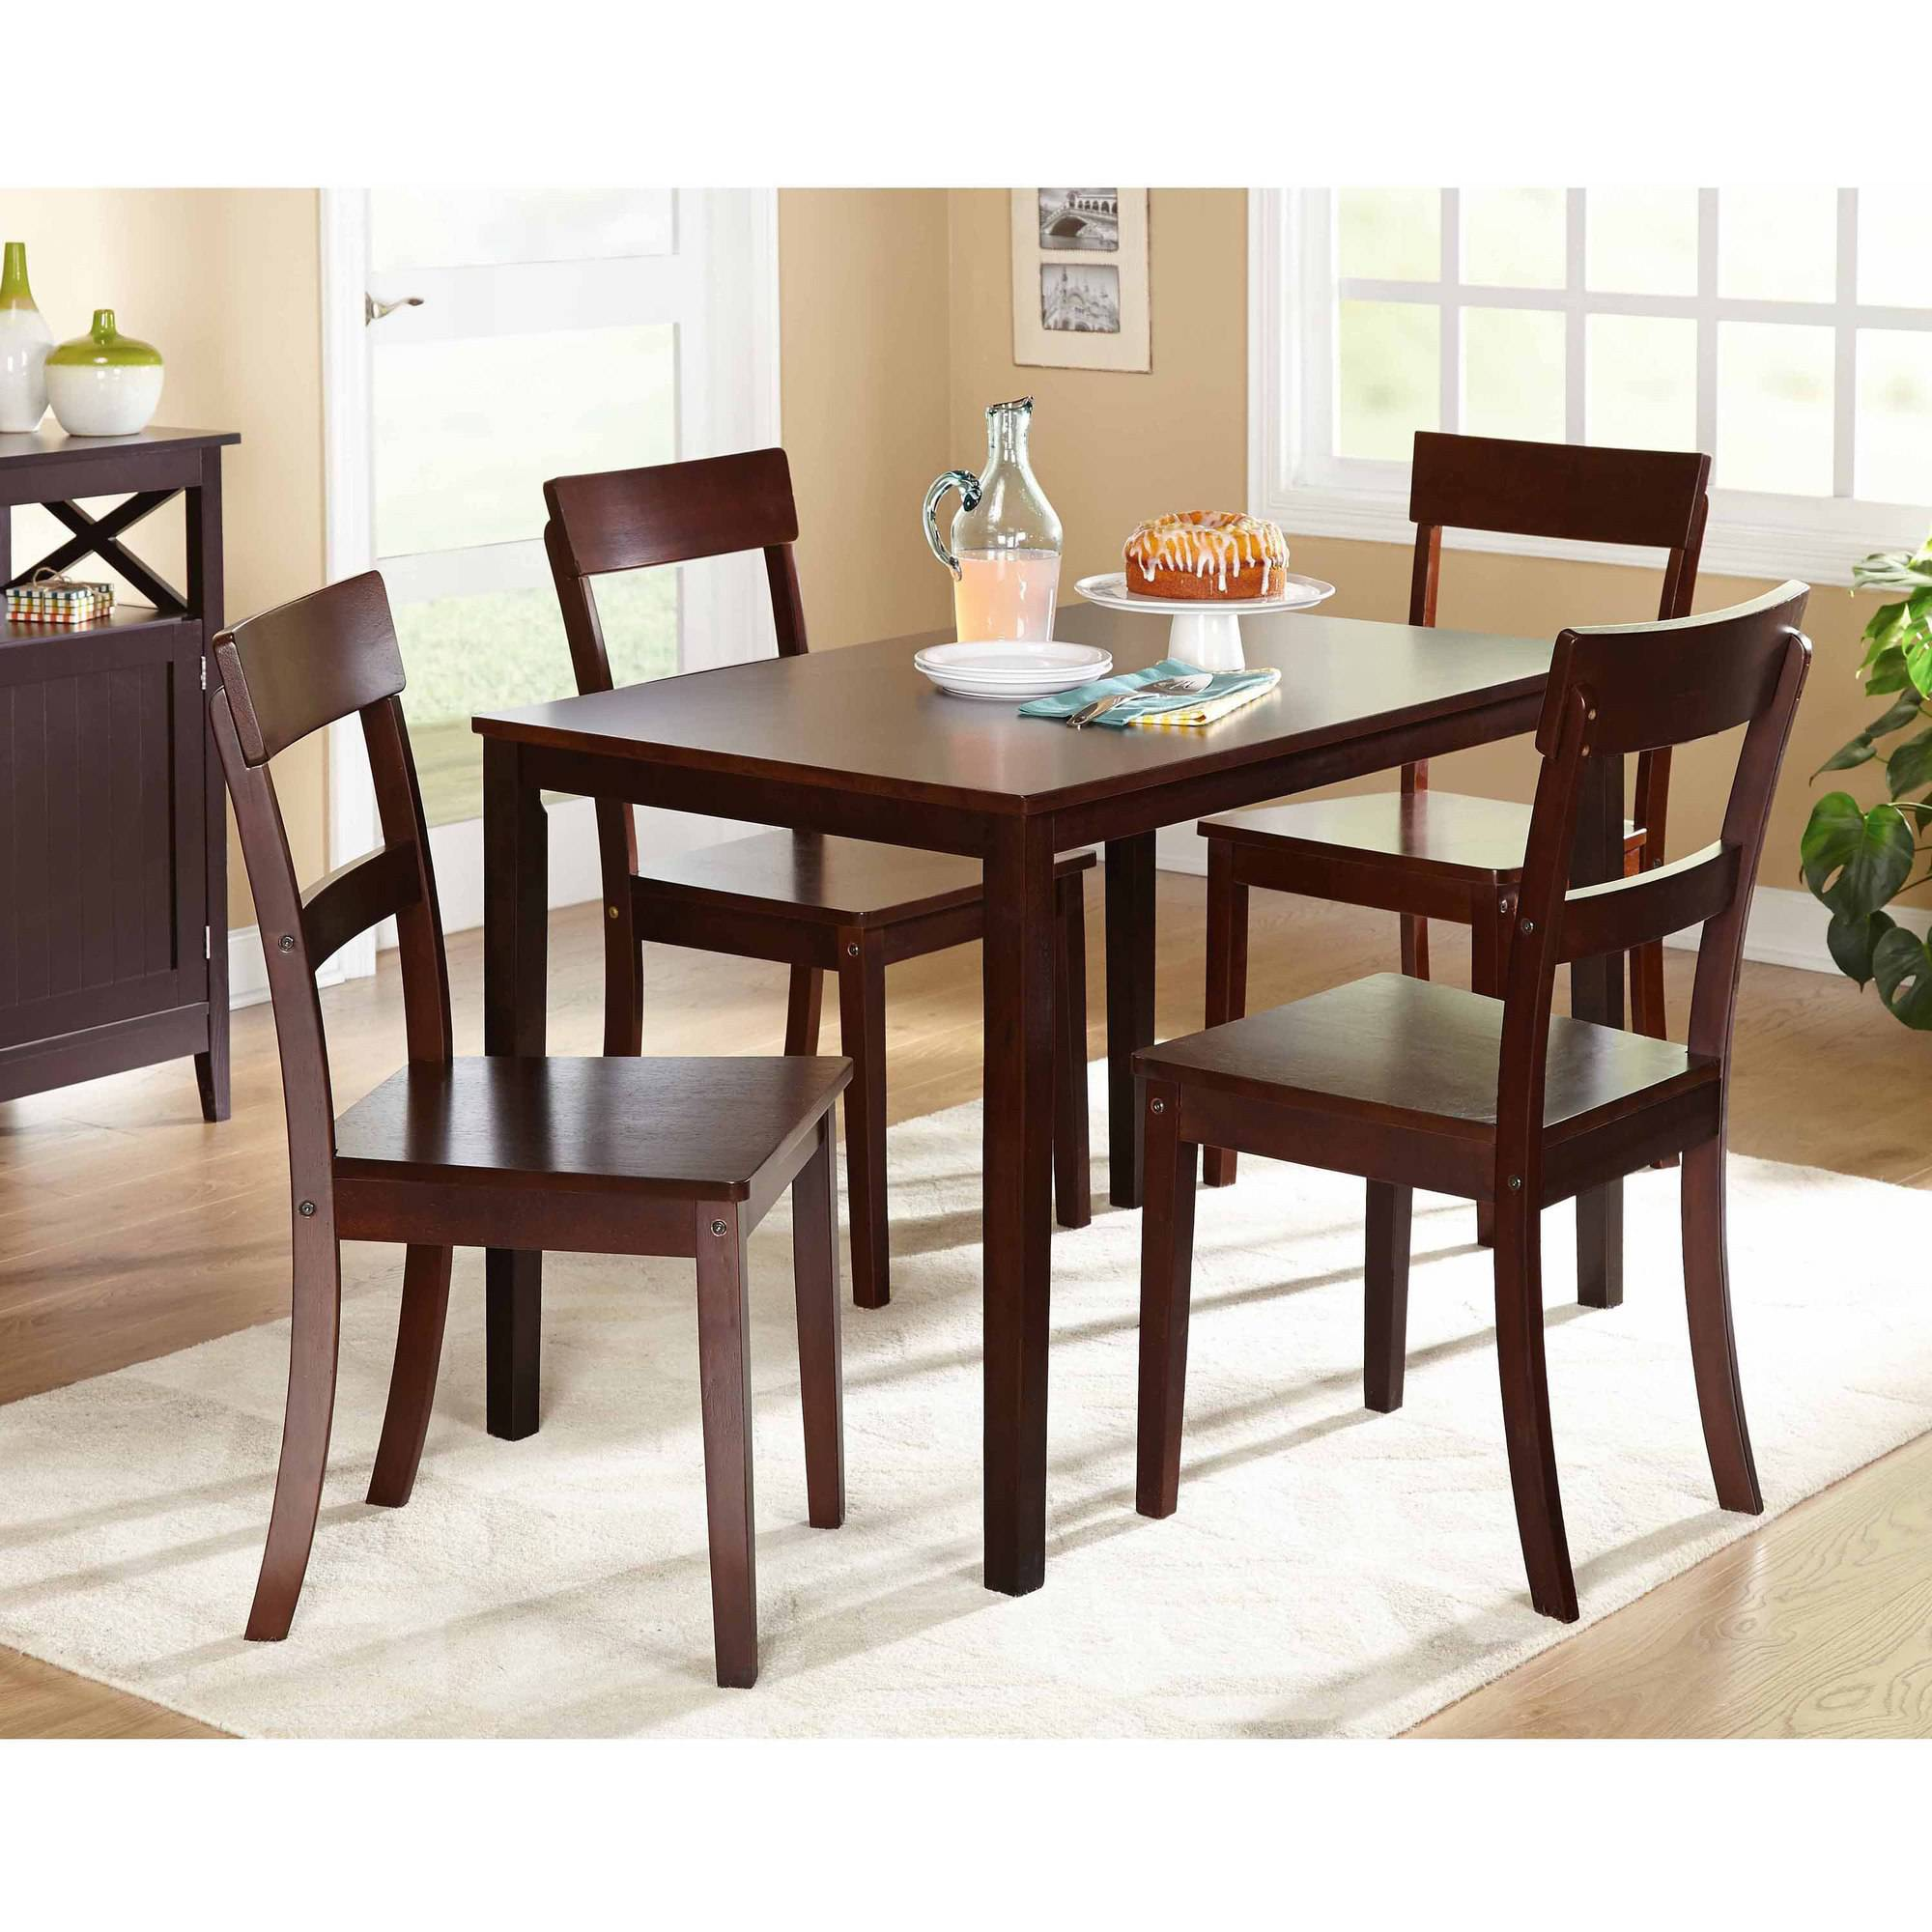 5 pc dining set Beverly 5 Piece Dining Set, Multiple Finishes   Walmart.com 5 pc dining set